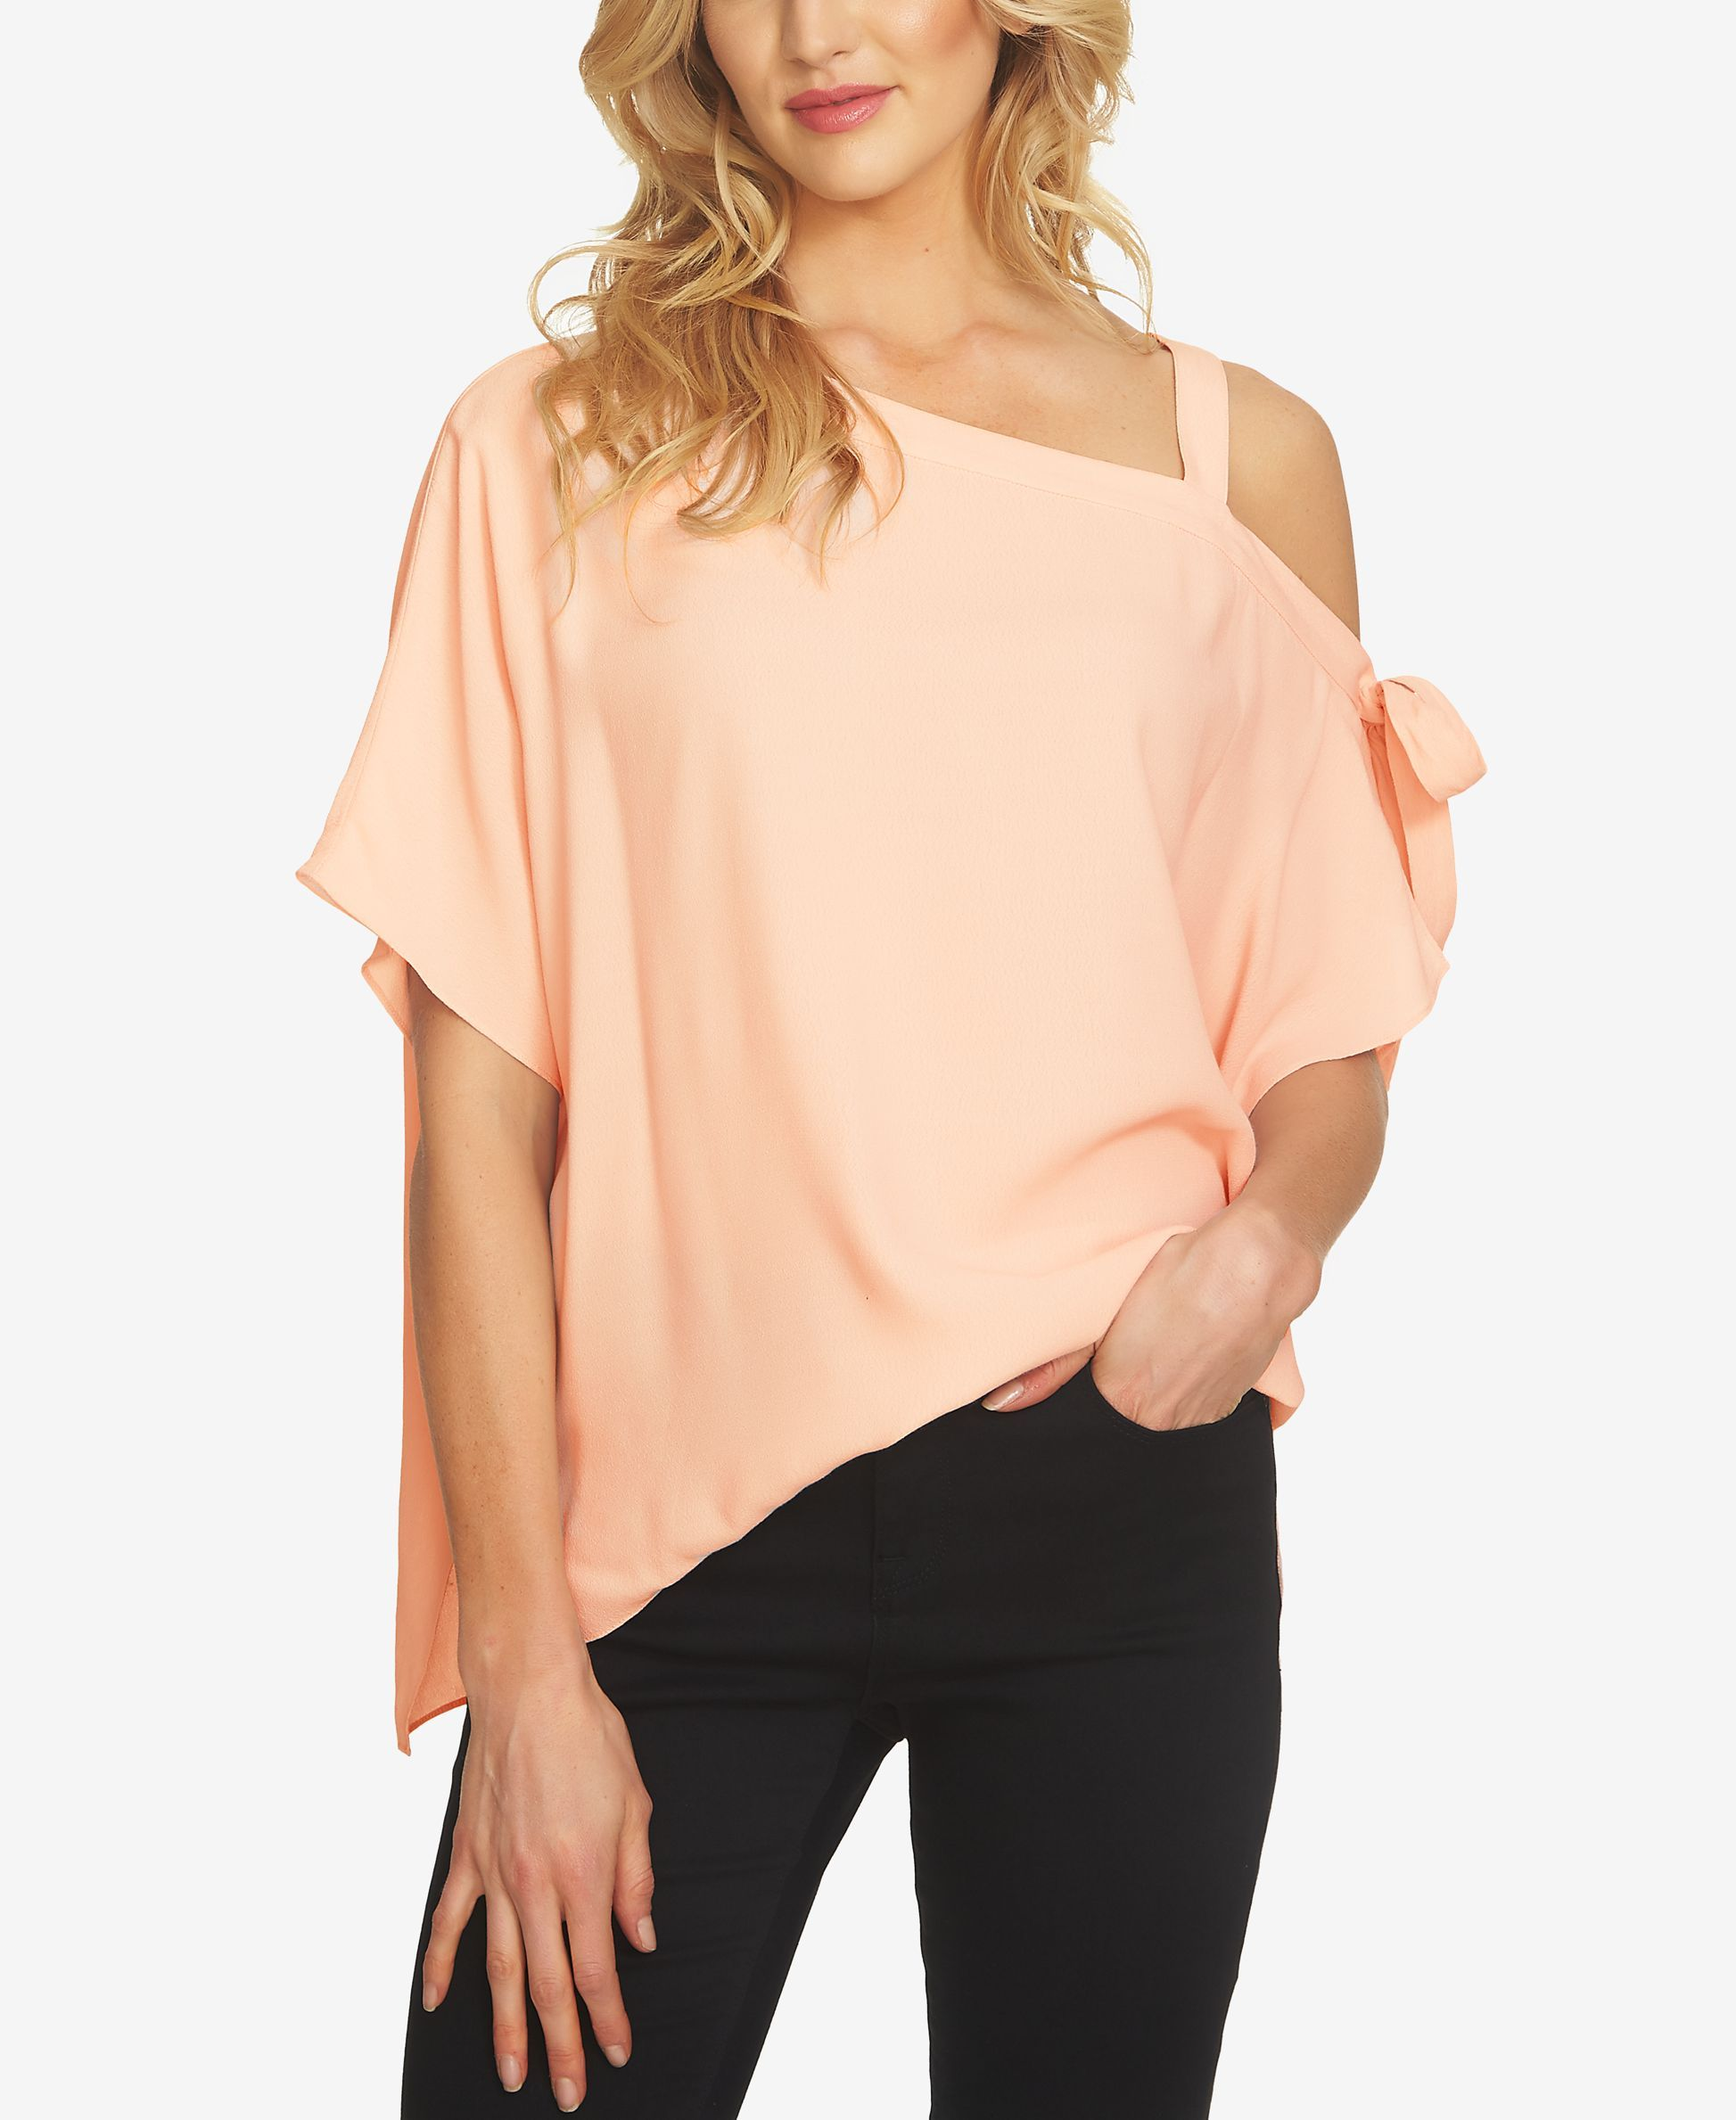 132a53b9cbf421 1.state One-Shoulder Tie-Detail Top One Shoulder Tops